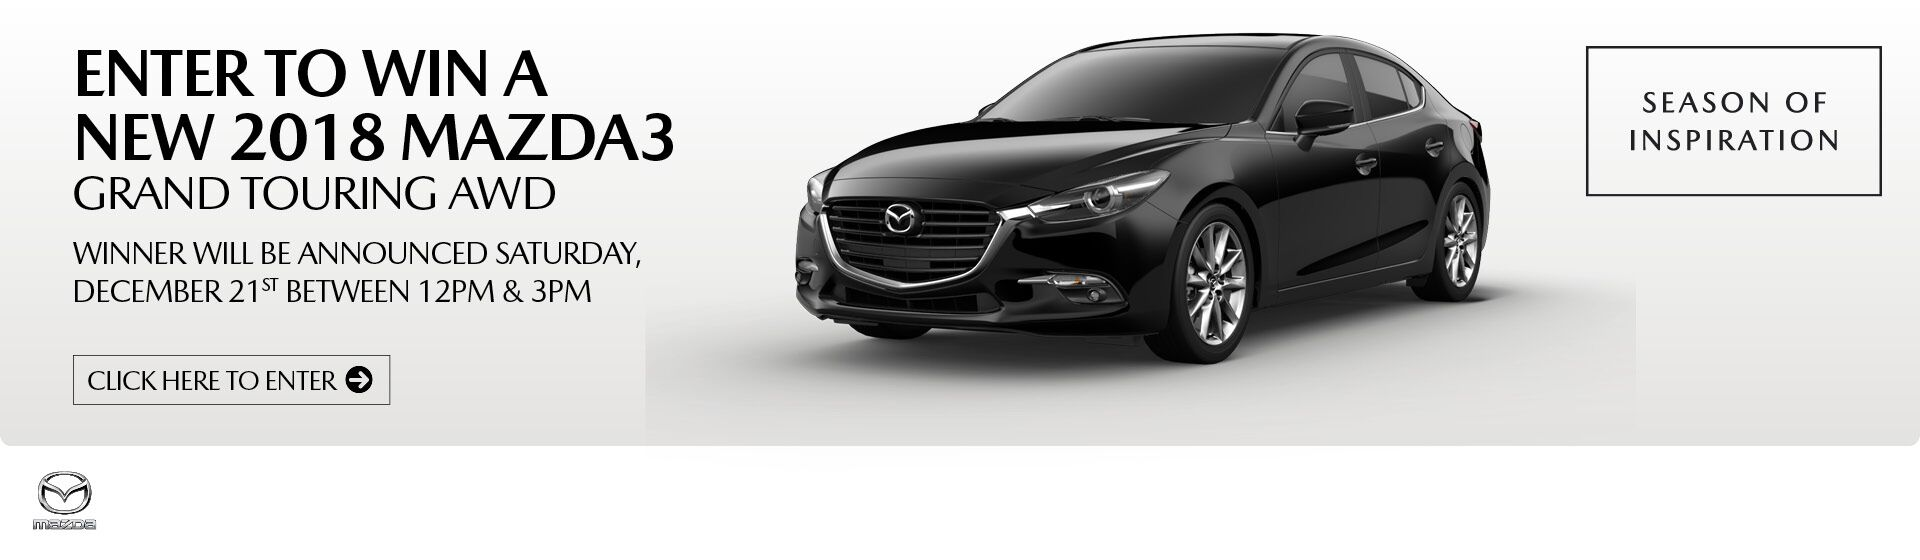 Enter to Win a New 2018 Mazda3 Grand Touring AWD!